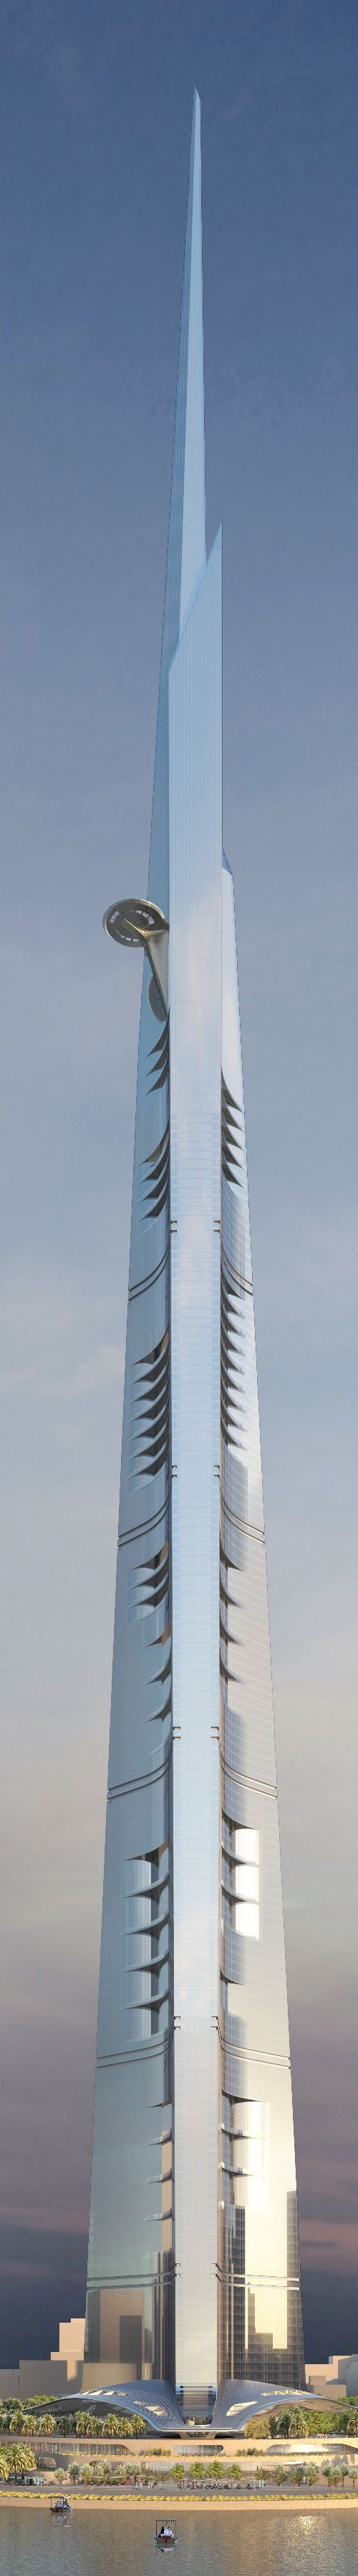 Kingdom Tower: the next contender for the tallest building in the world